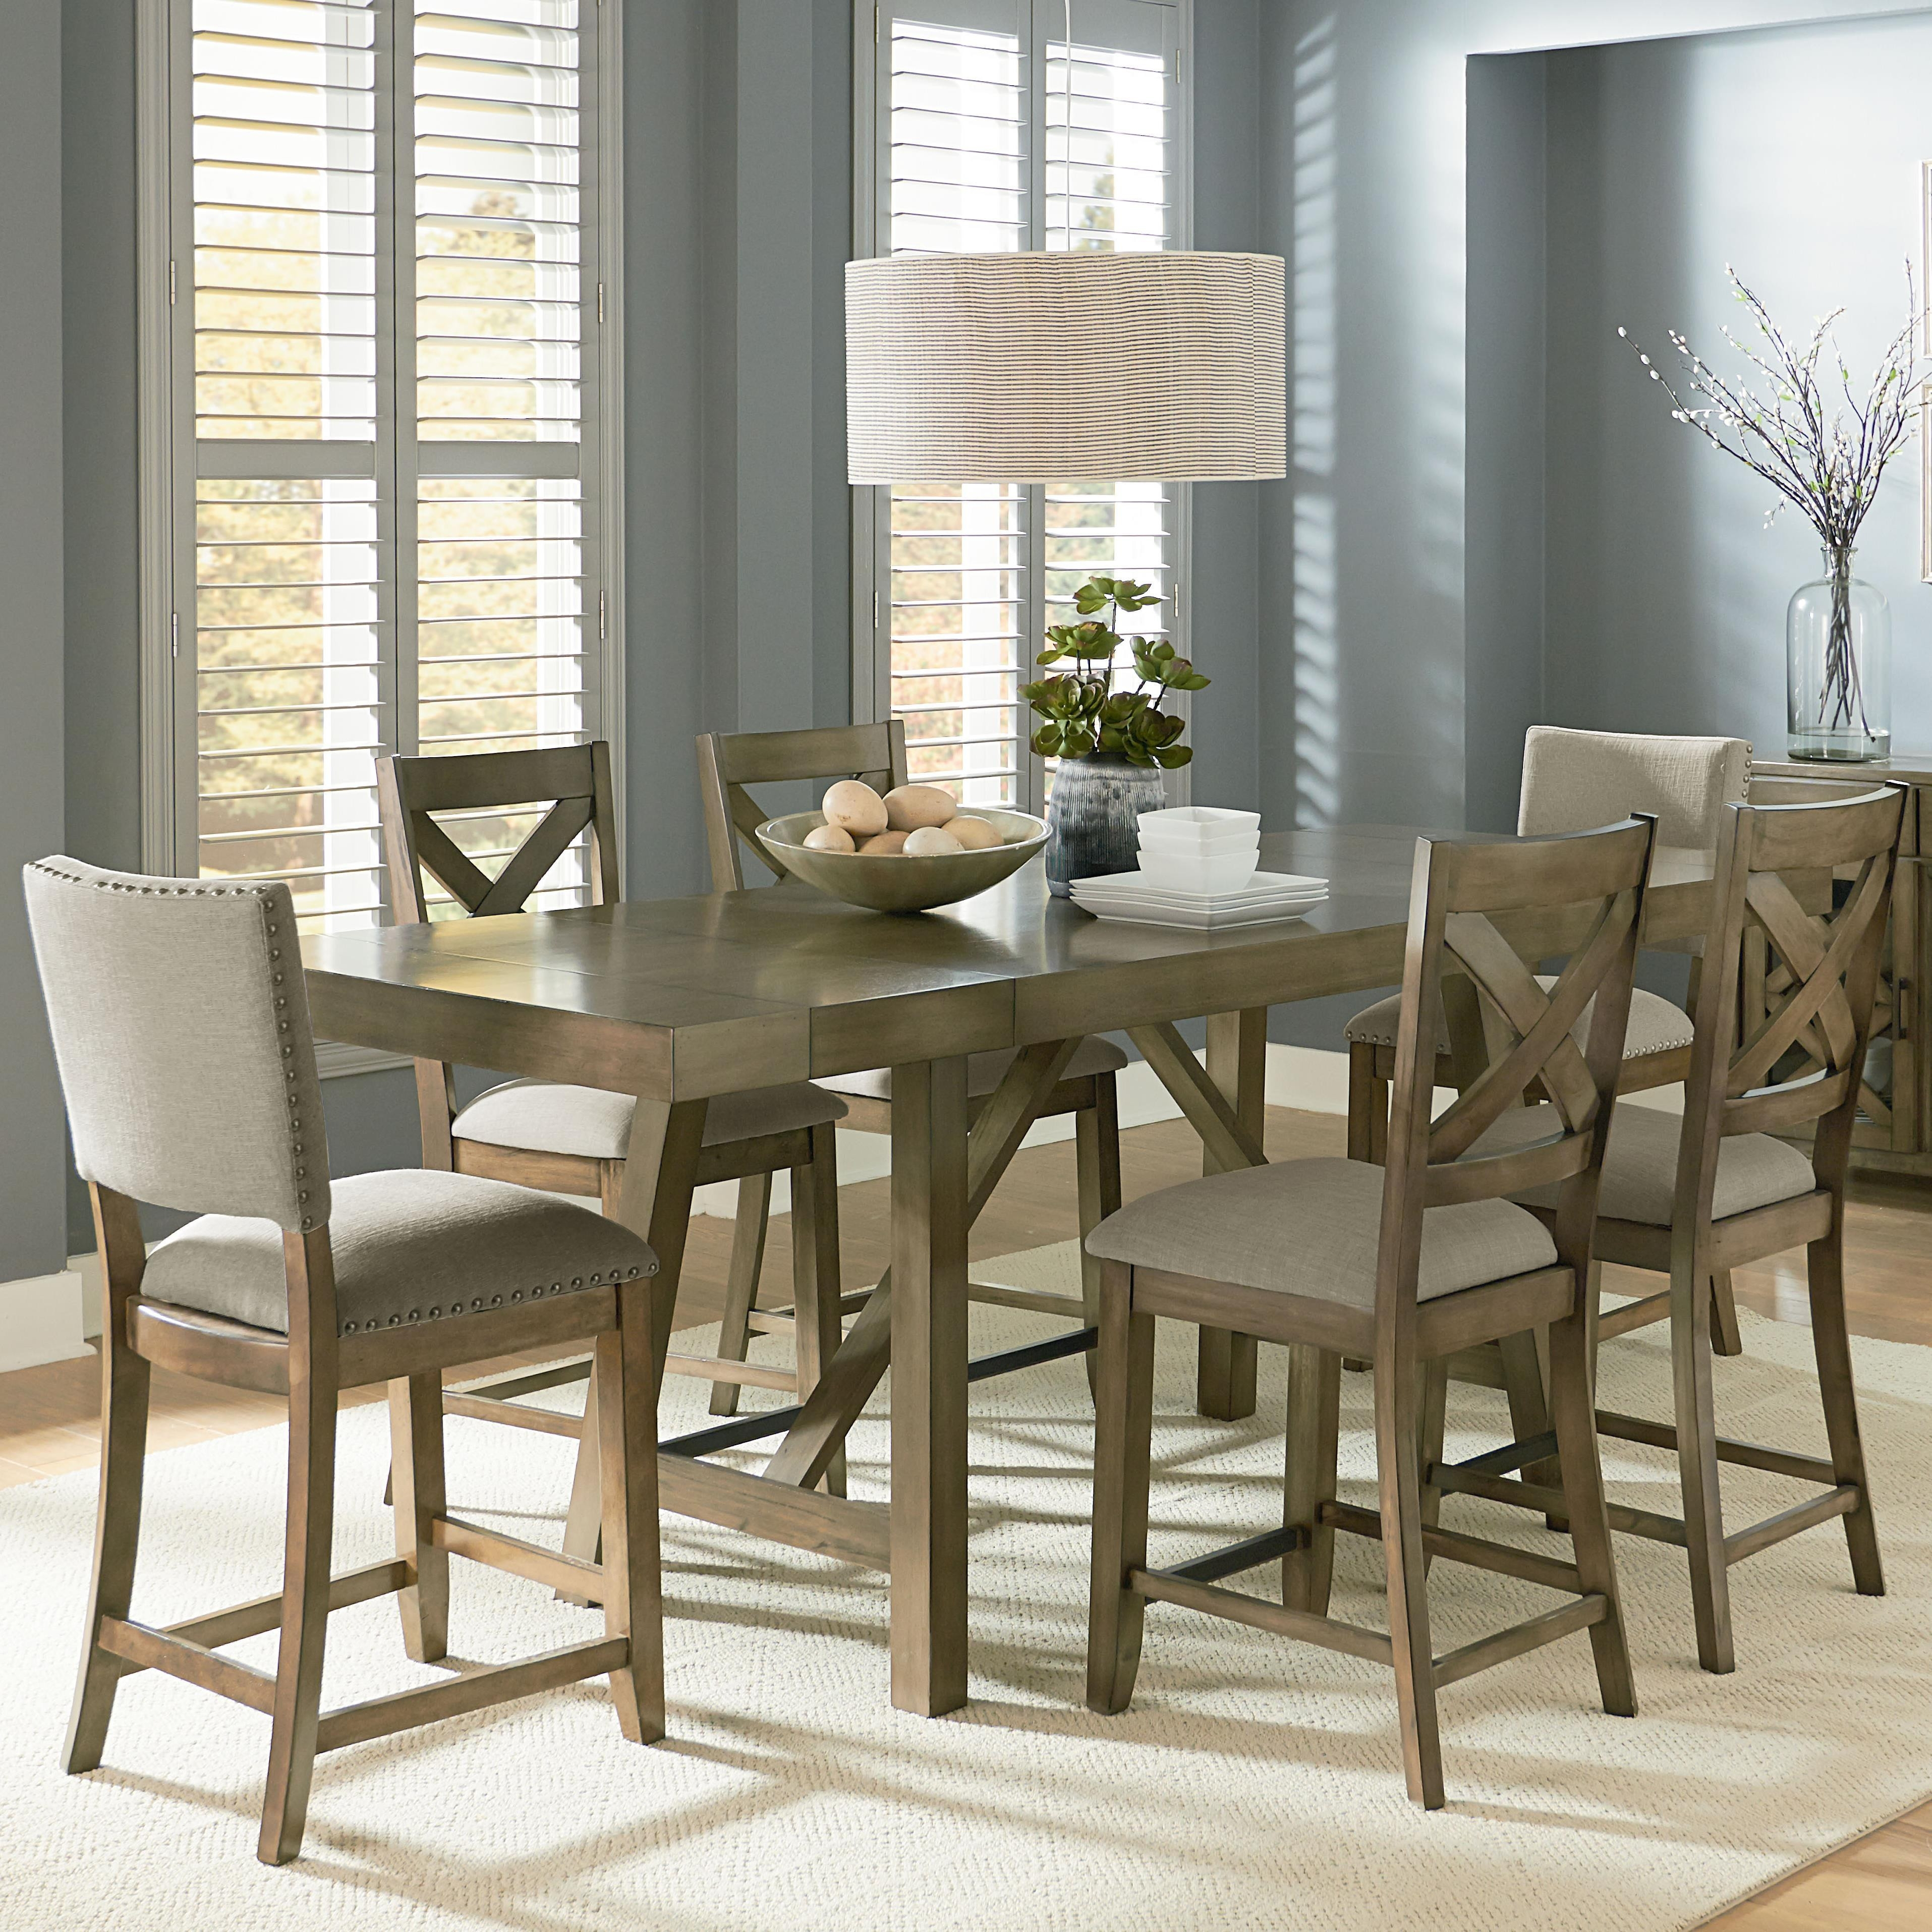 Lovely 25 Counter Height Dining Table Jcpenney Scheme ...